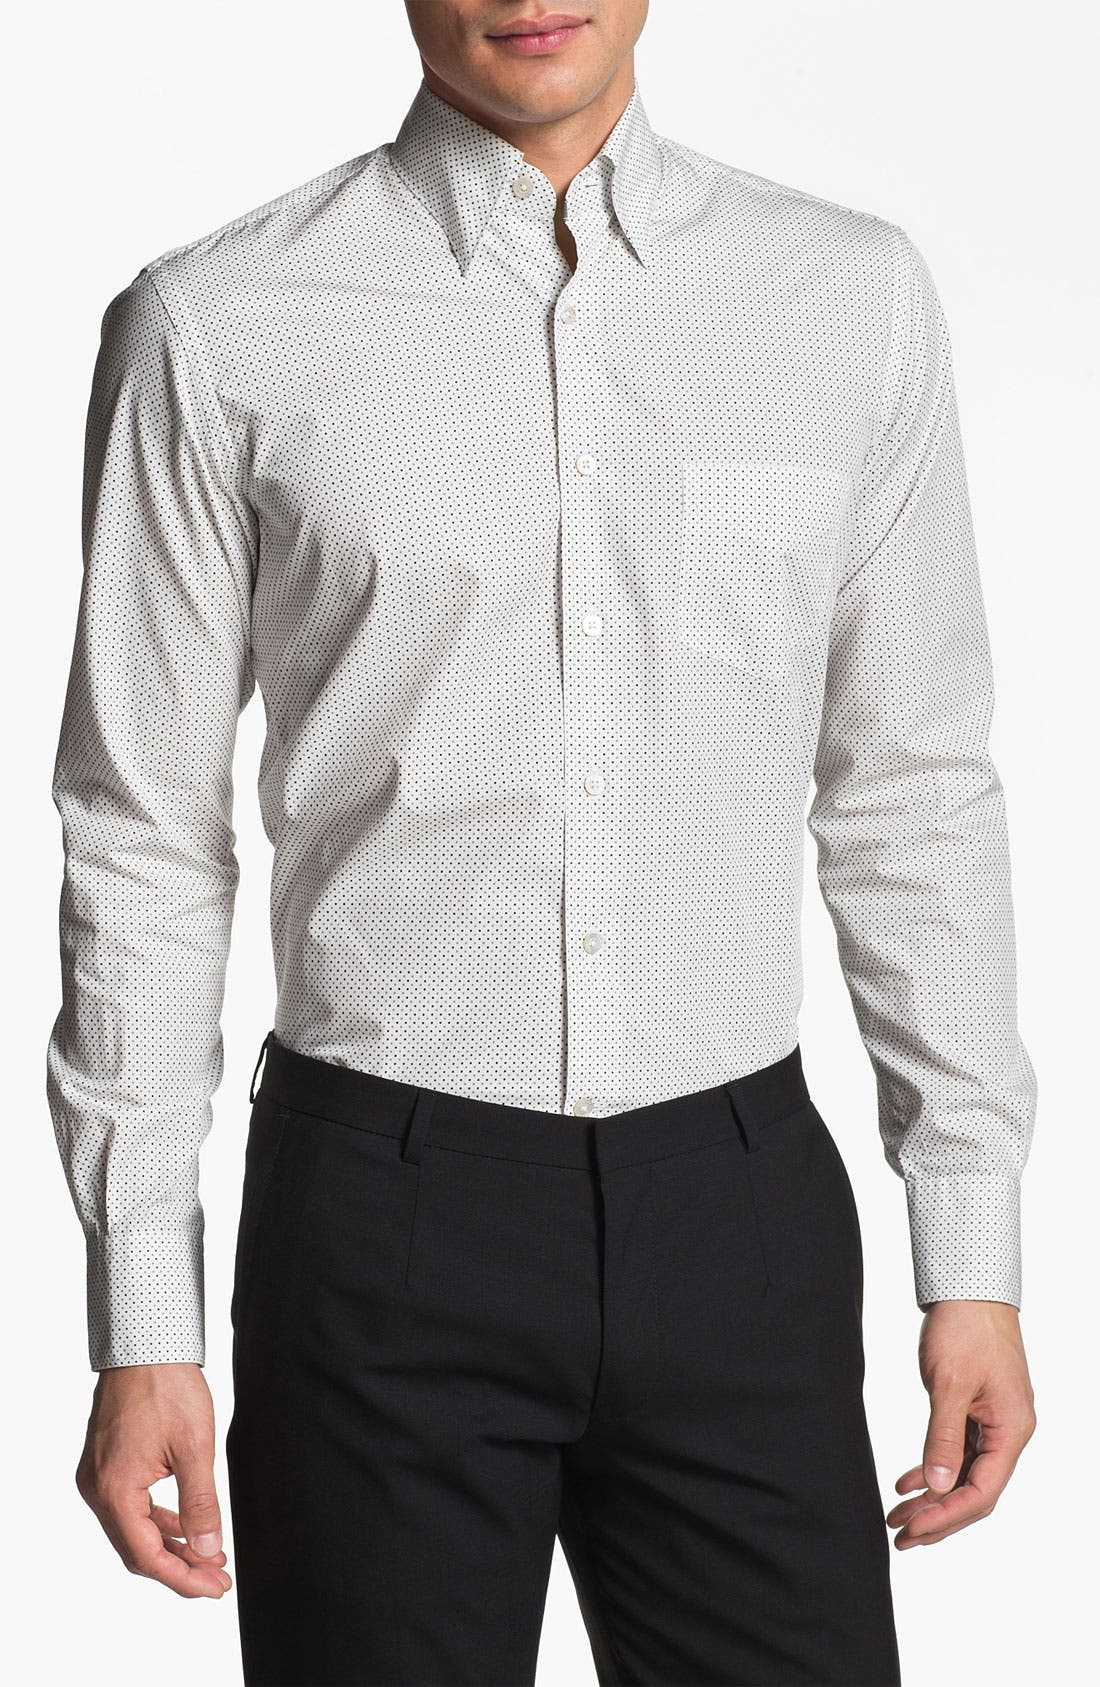 Alternate Image 1 Selected - Canali Regular Fit Sport Shirt